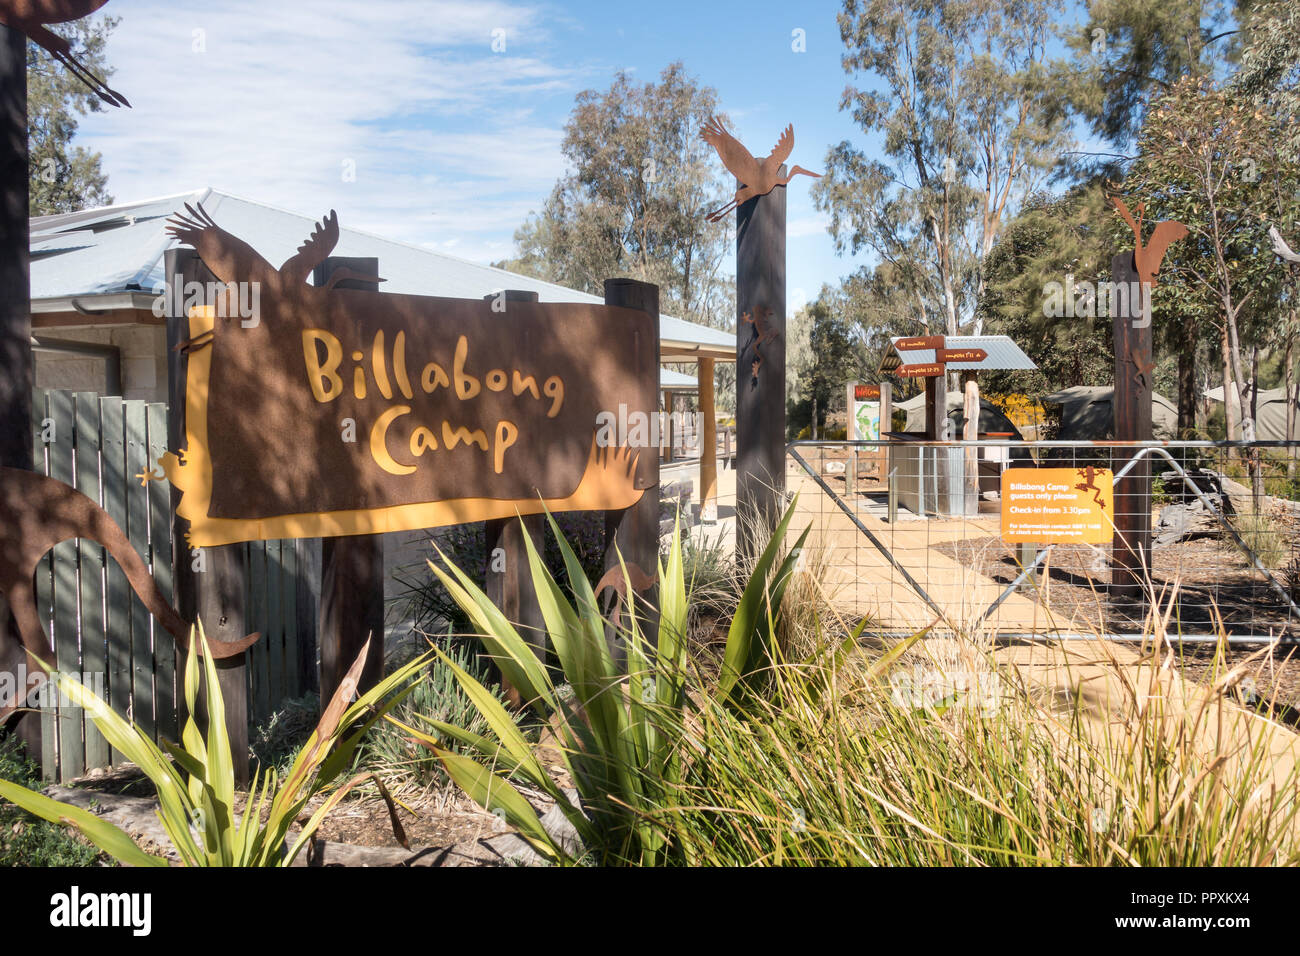 Entrance to Billabong Camping area at Dubbo Zoo NSW Australia. Stock Photo